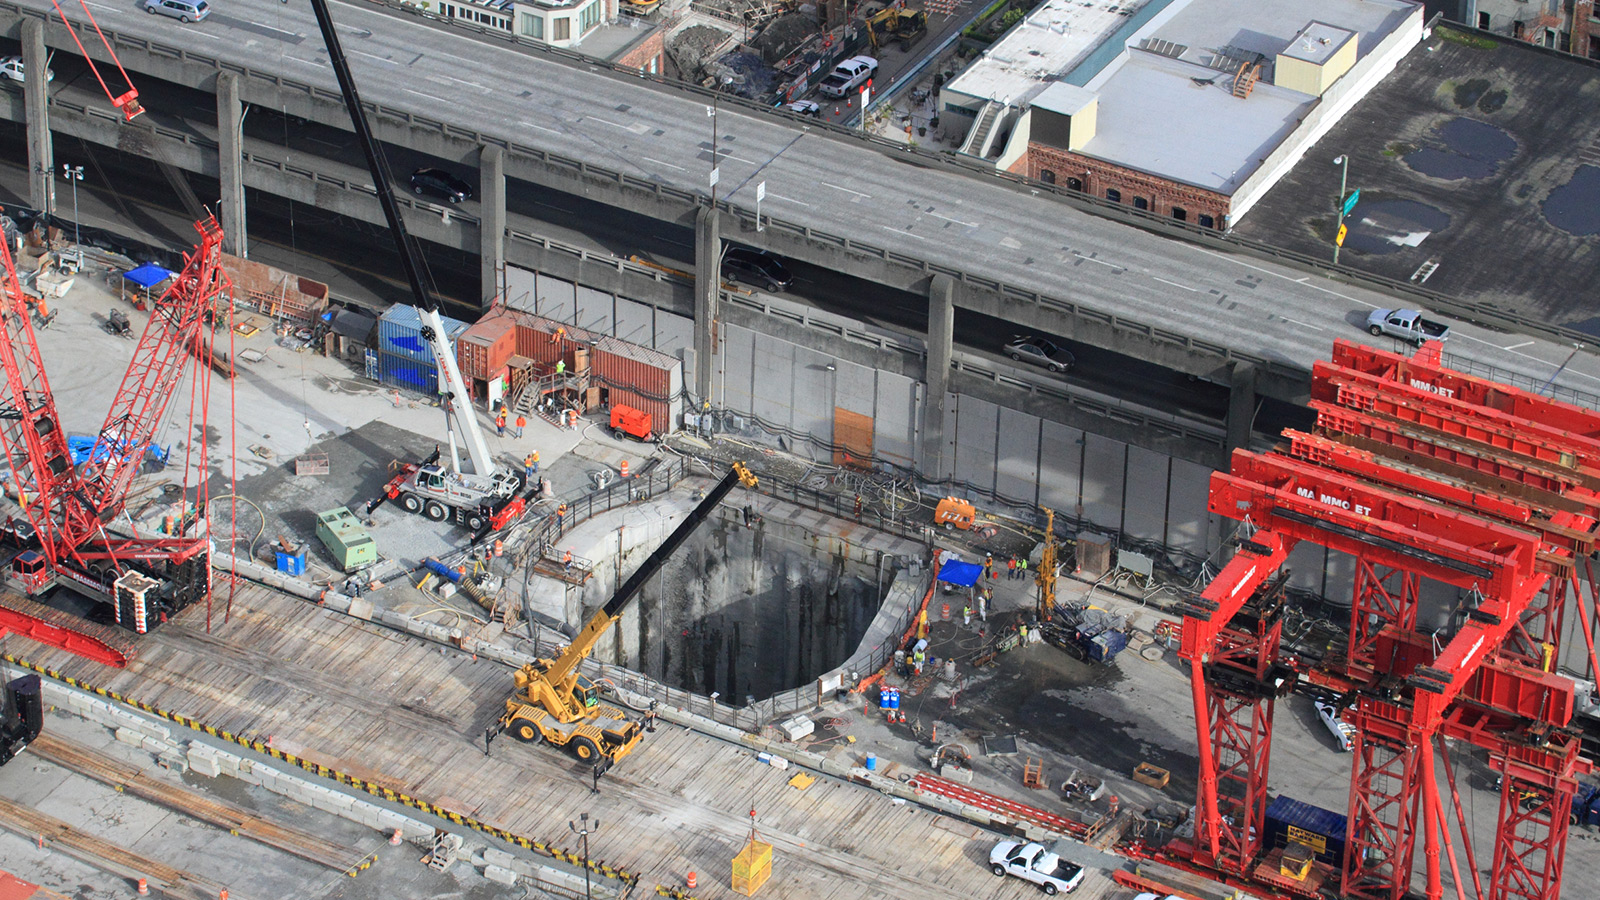 Feb. 13, 2015, aerial photo of the 120-foot-deep pit crews will use to access and repair Bertha, the SR 99 tunneling machine.